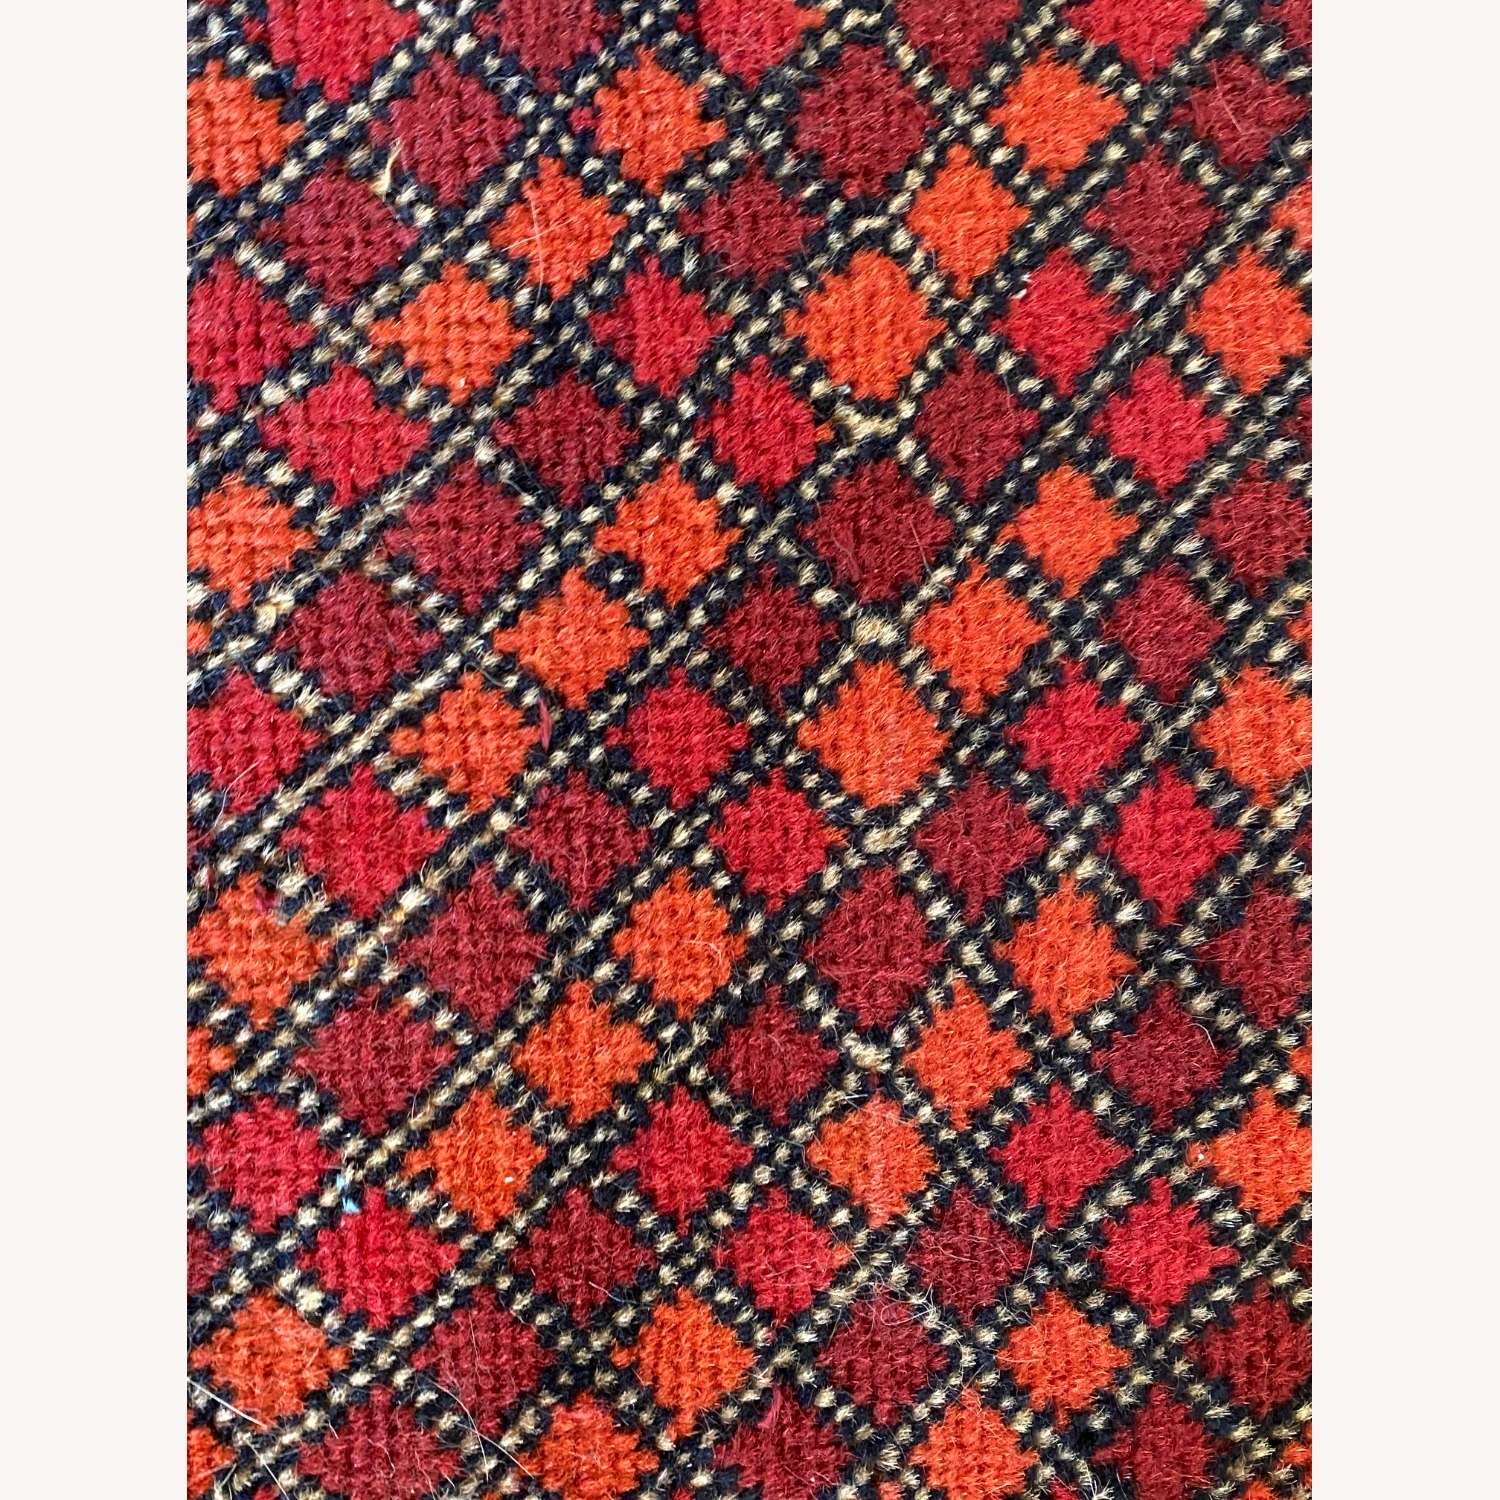 Small Geometric Patterned Afghani Rug - image-2